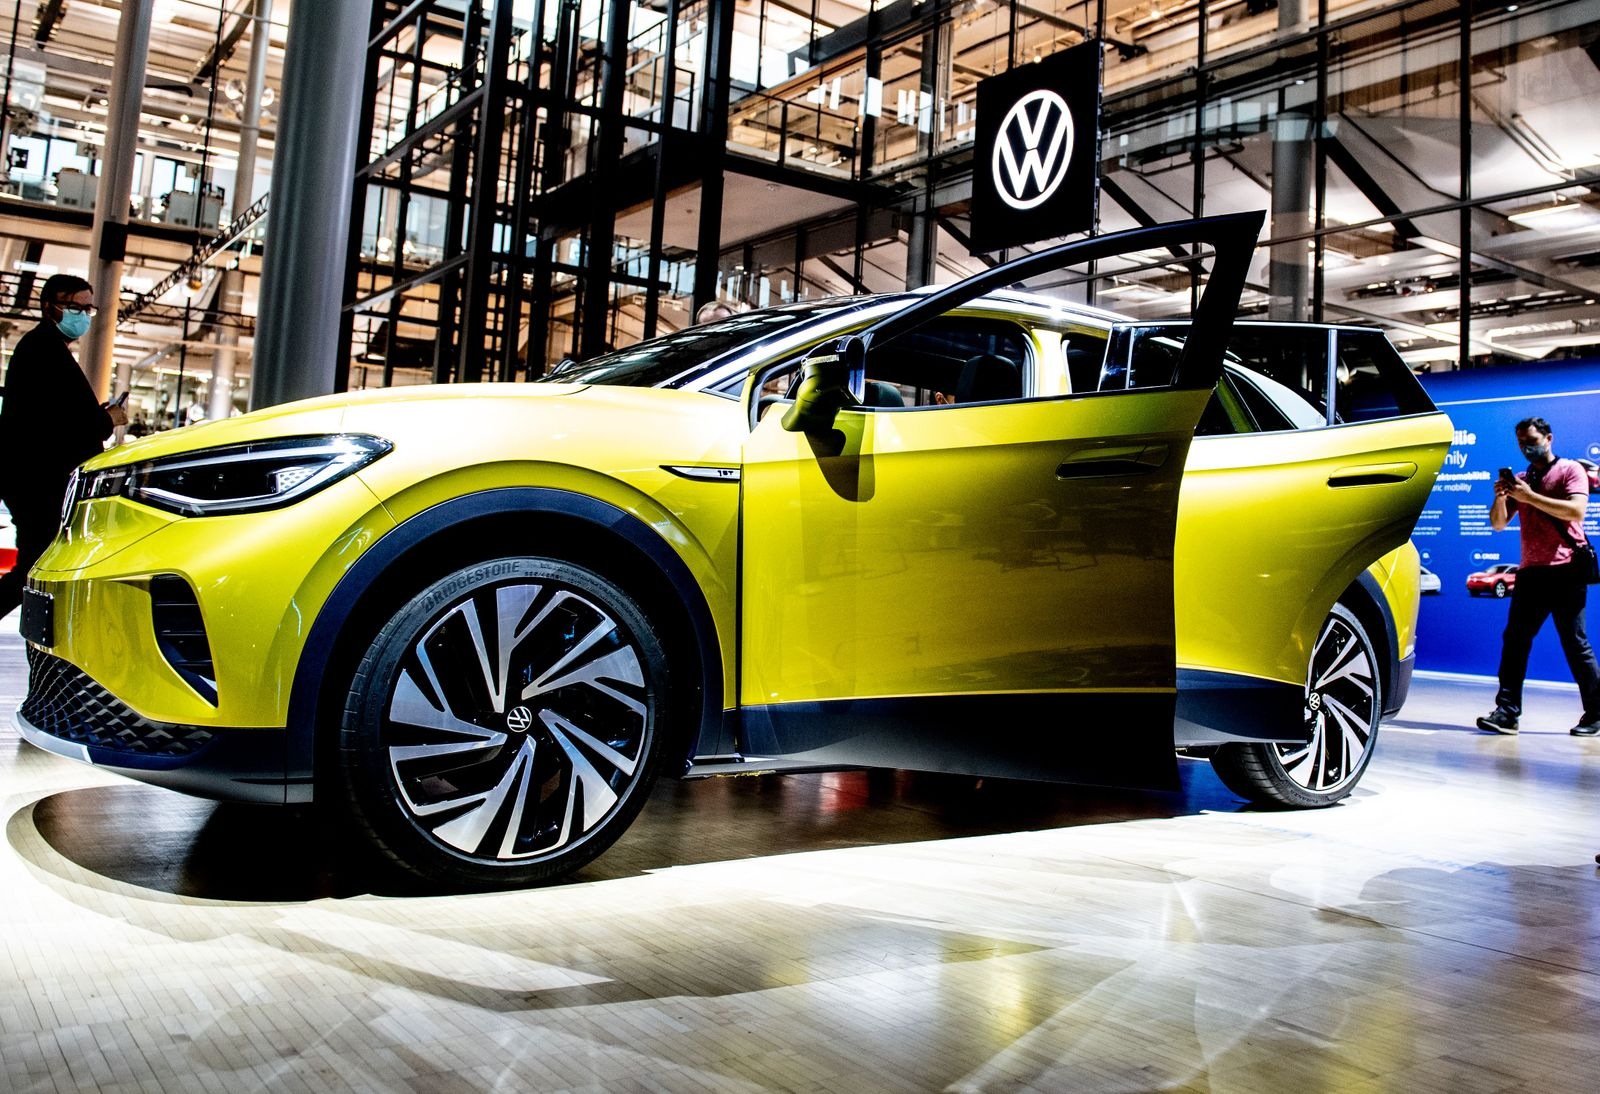 Volkswagen ID.4 presentation, Dresden, Germany - 23 Sep 2020